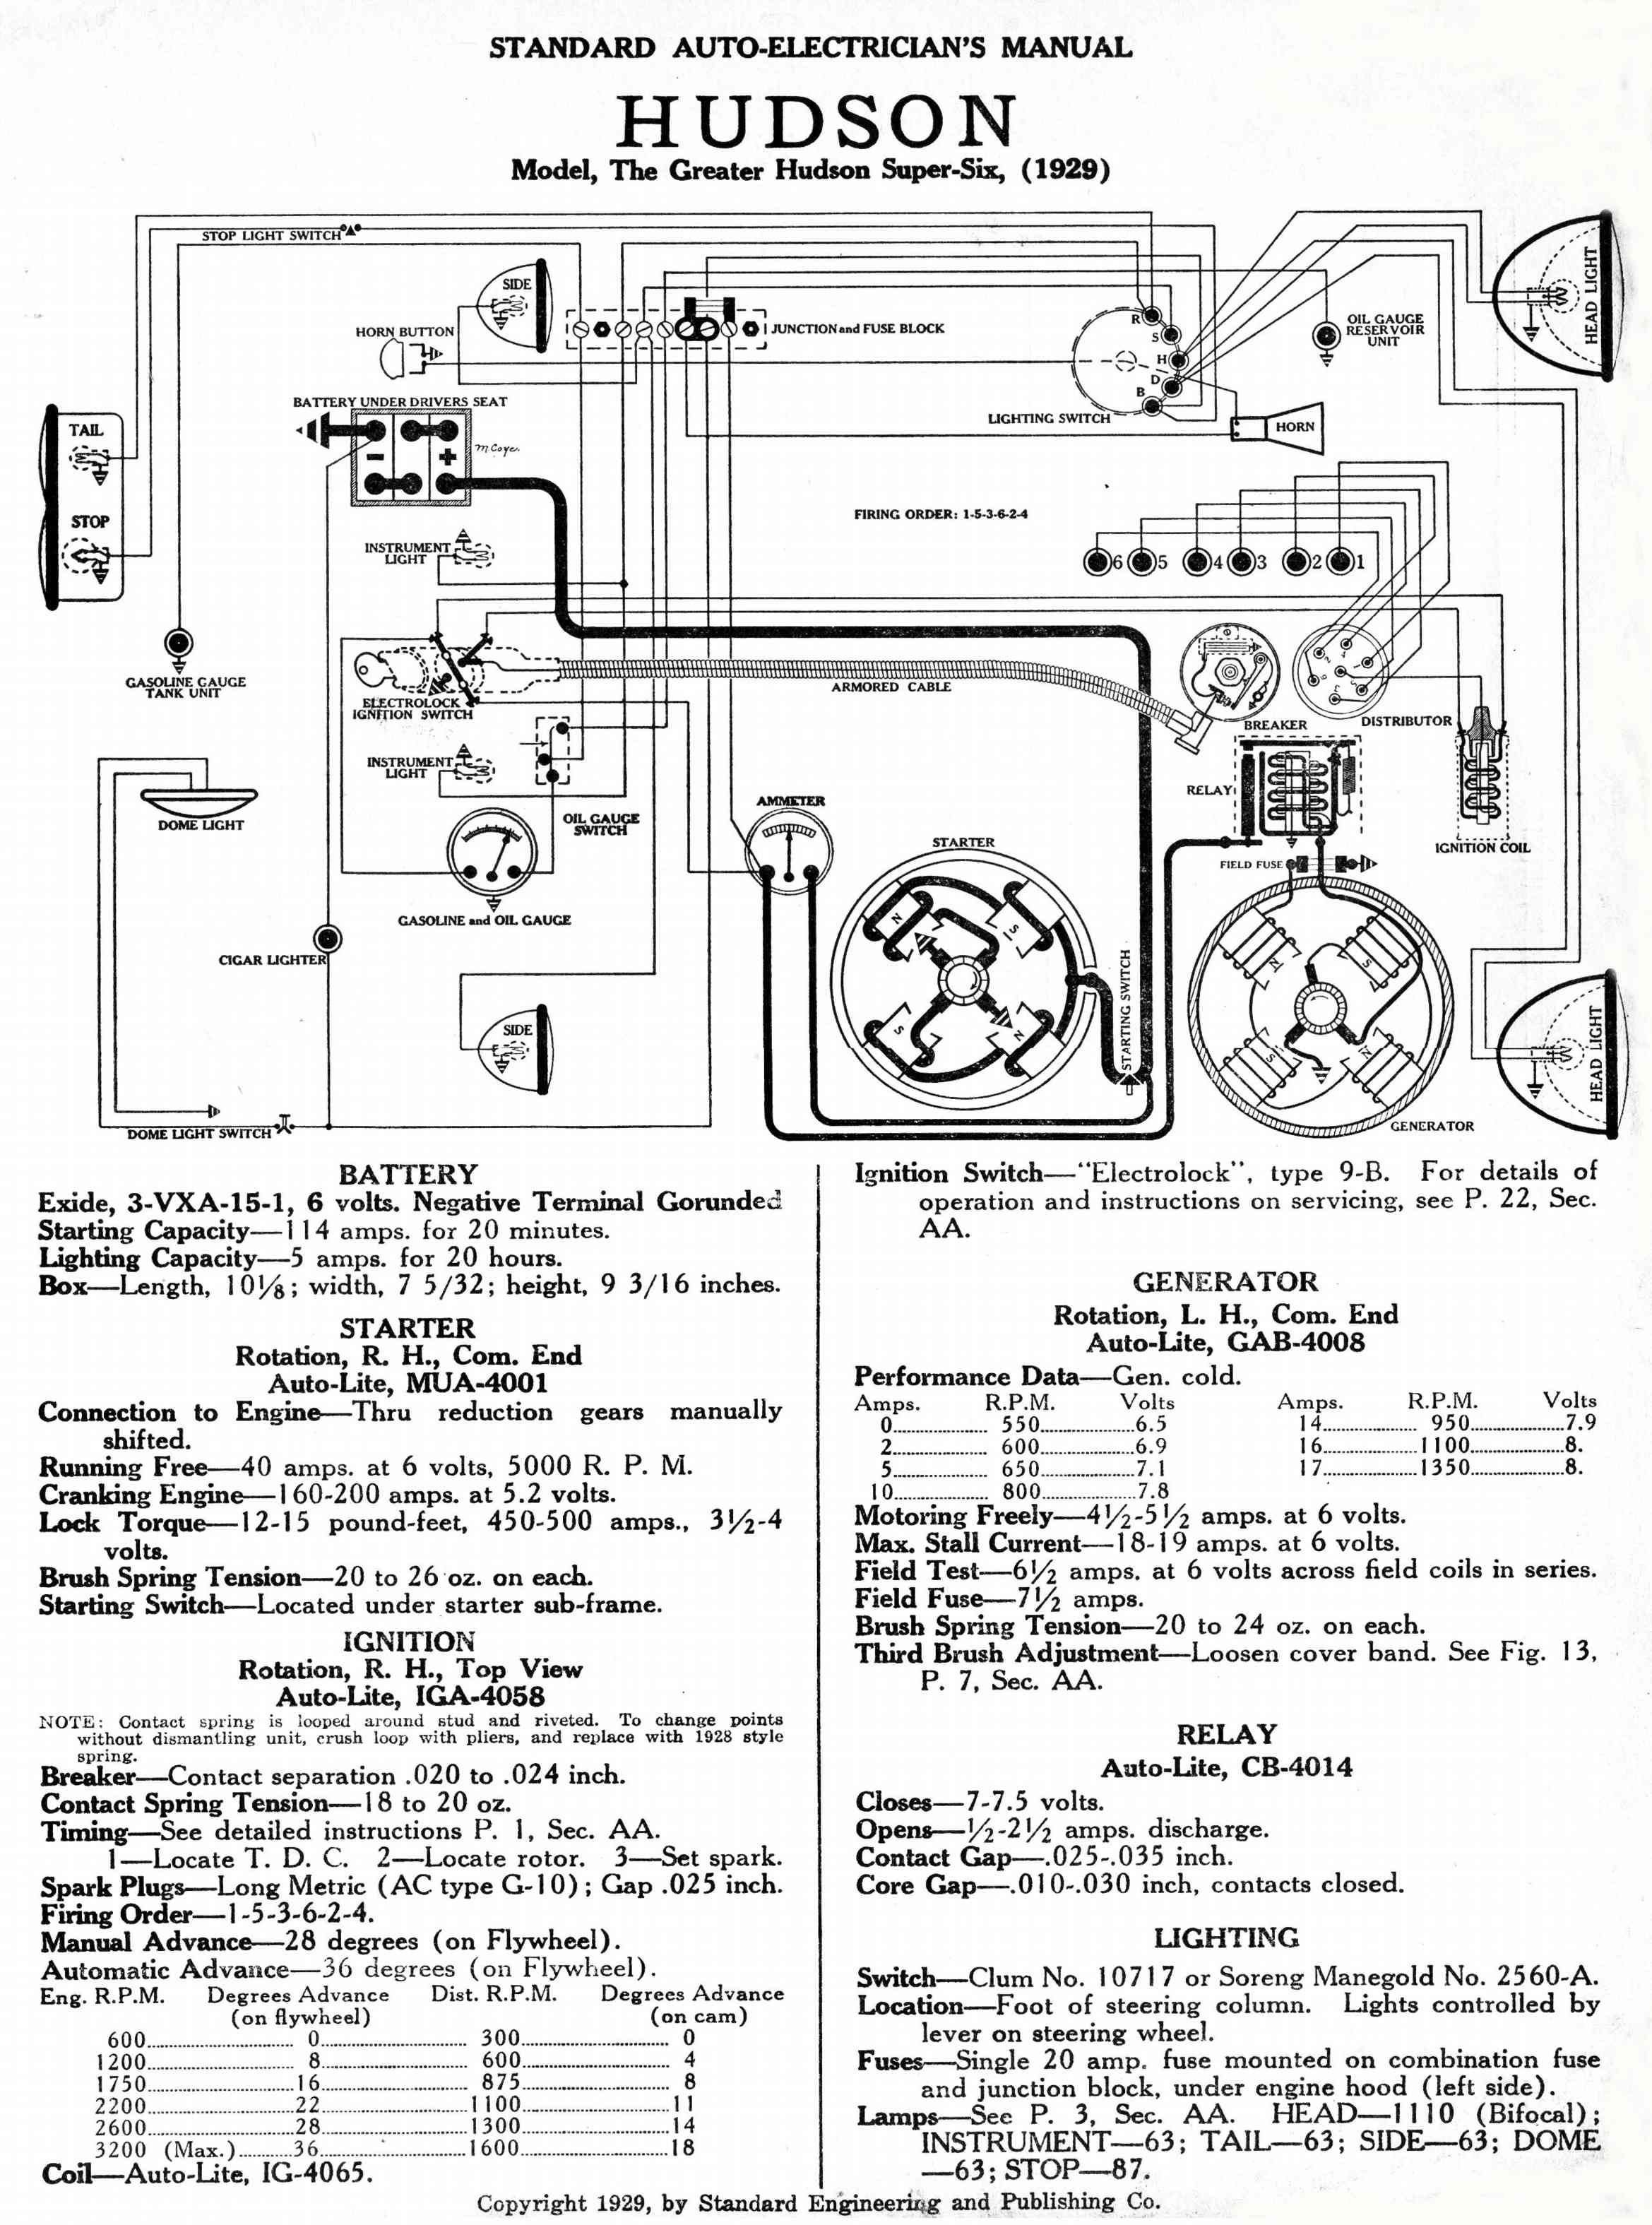 29_elec_diagram hudson manuals tech index 2010 Buick Lacrosse Wiring-Diagram at mifinder.co